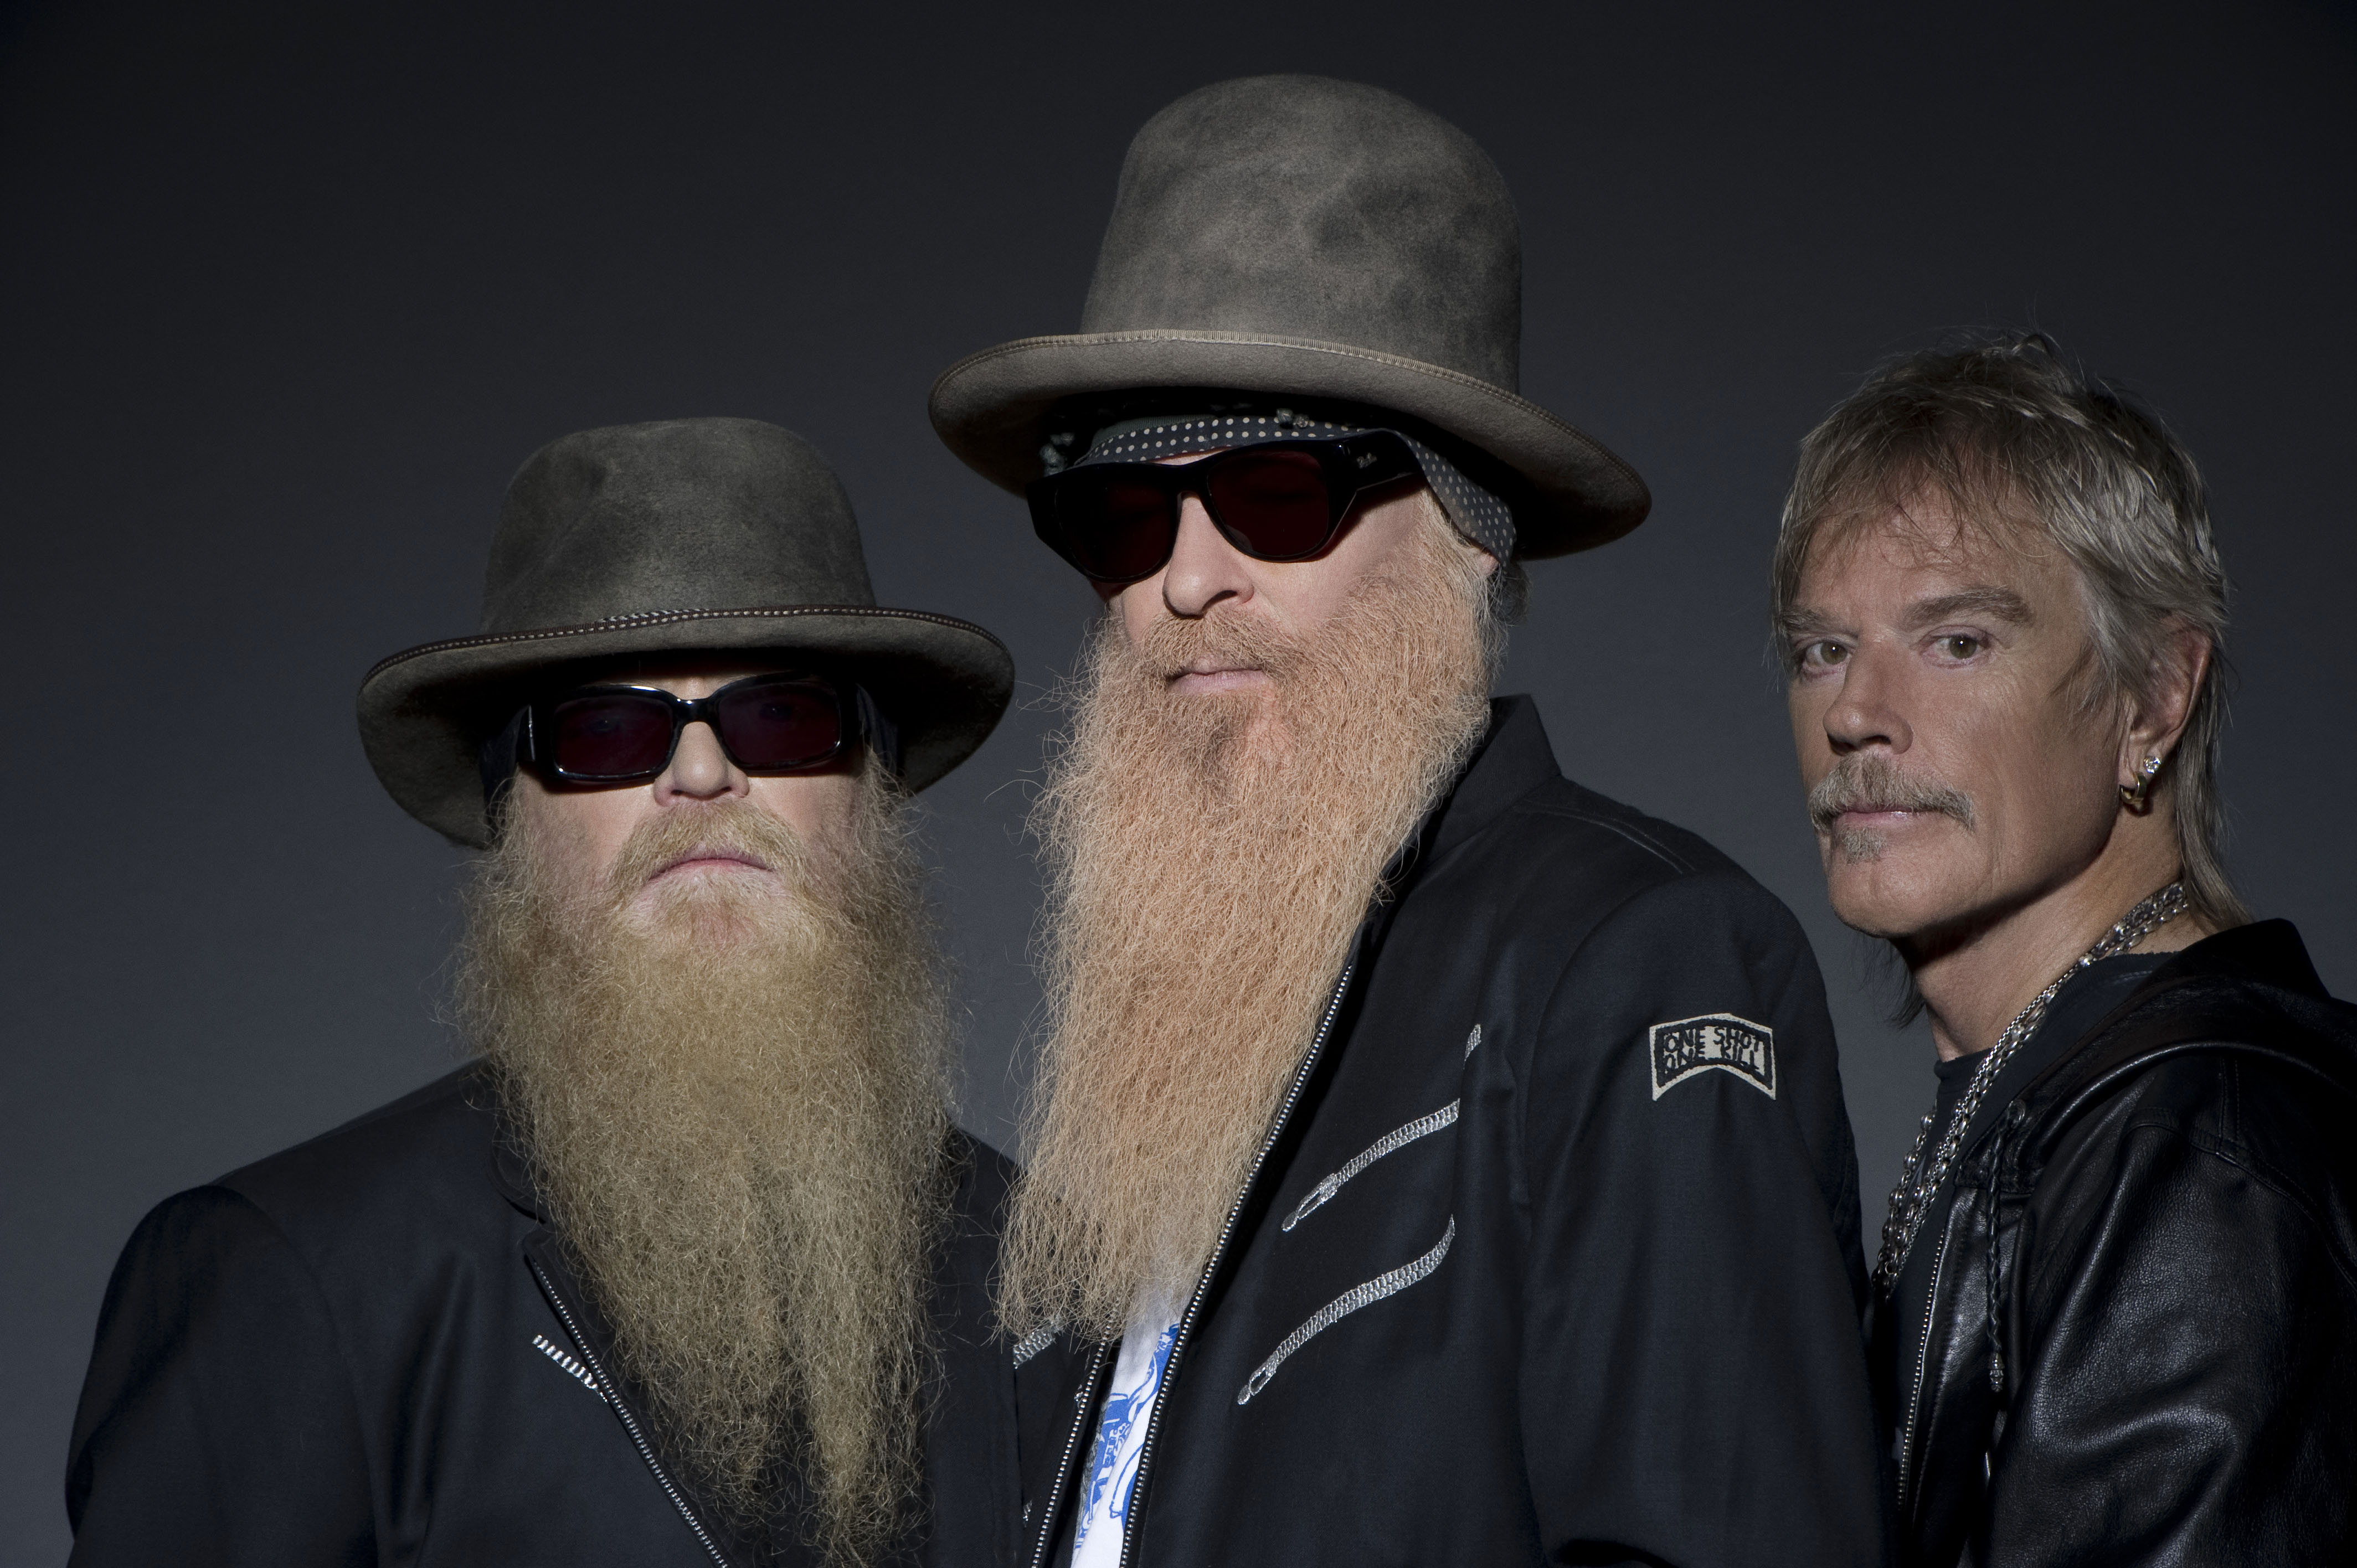 1c4a591f73a5c Mayor Mike Rawlings Gives ZZ Top a Special Recognition for 50 Years - D  Magazine